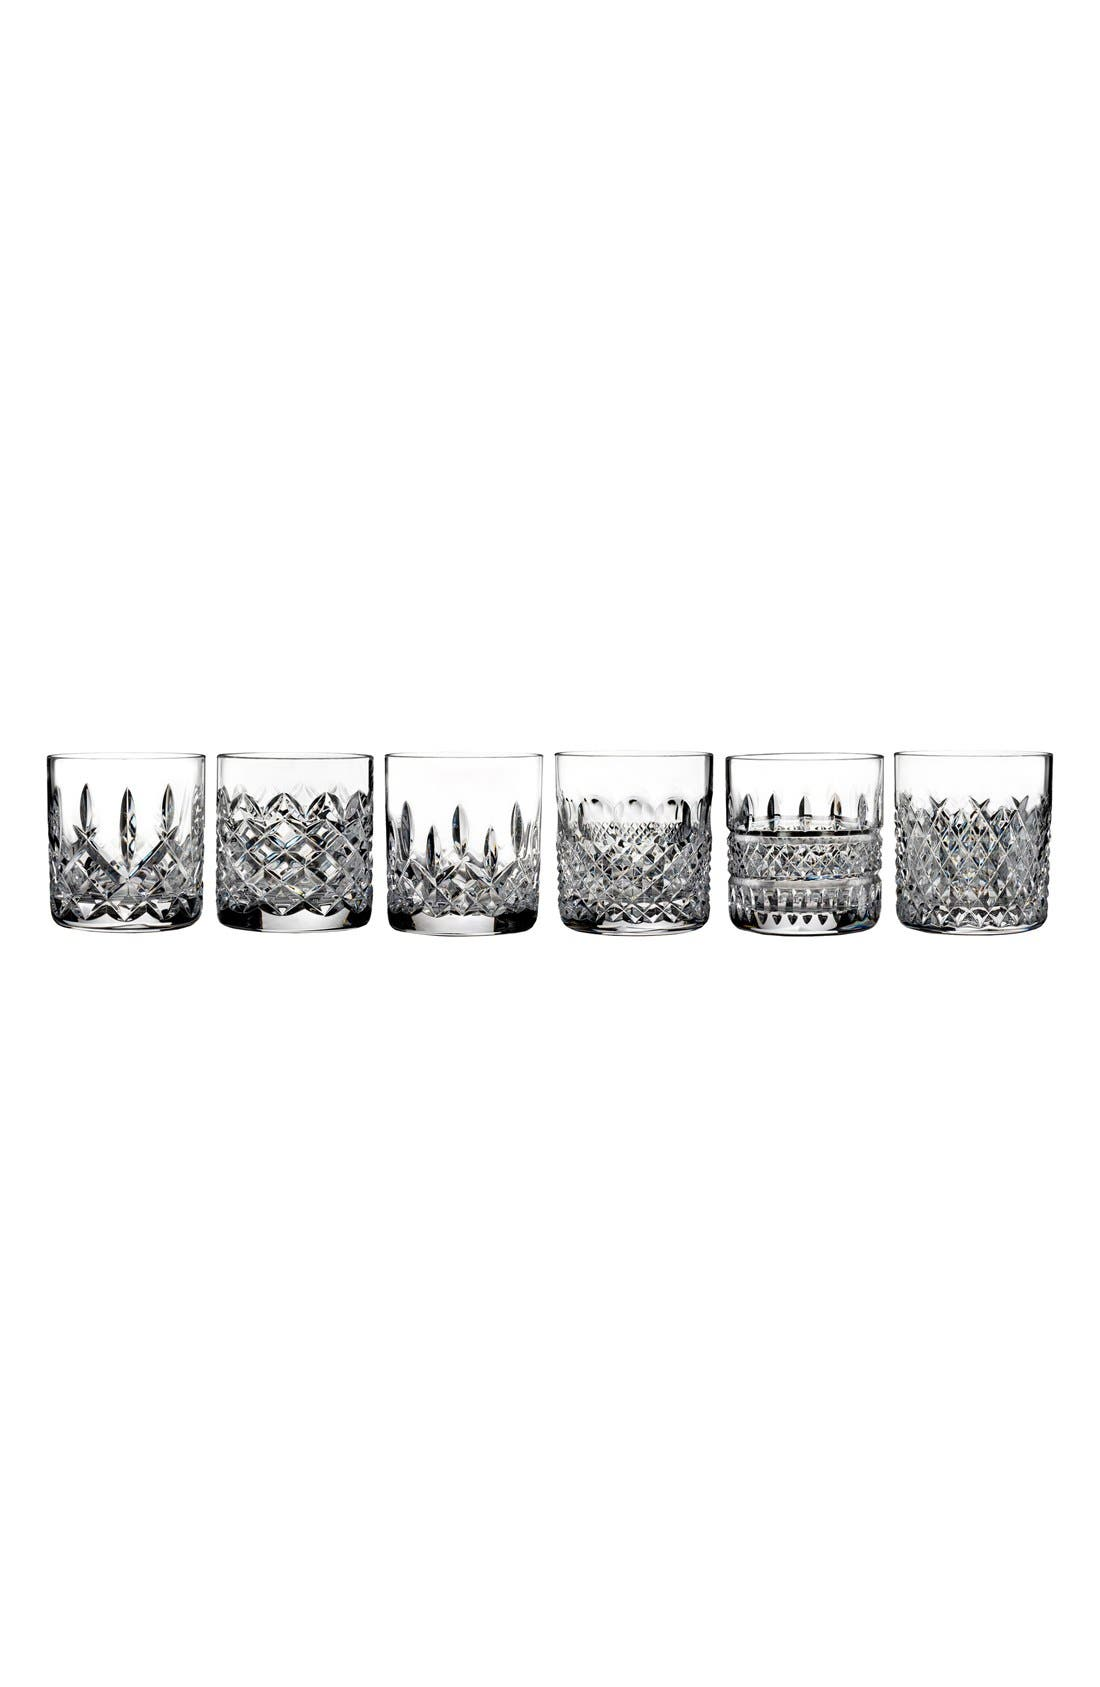 Waterford 'Heritage' Lead Crystal Tumblers (Set of 6)